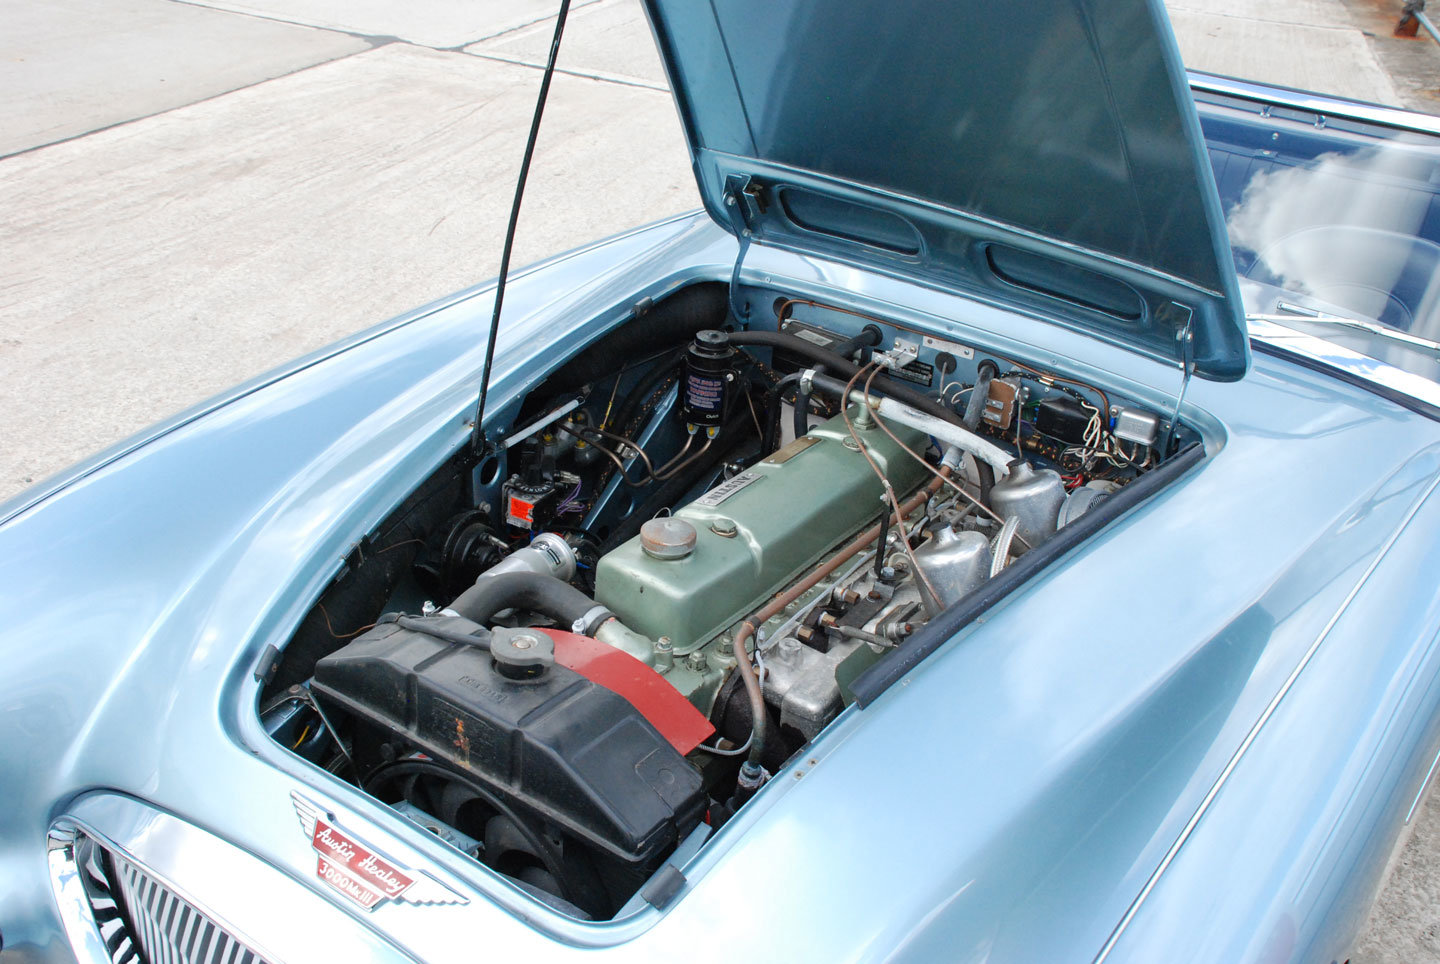 1966 Austin Healey 3000 MK 3 BJ8 phase 2 For Sale (picture 5 of 10)